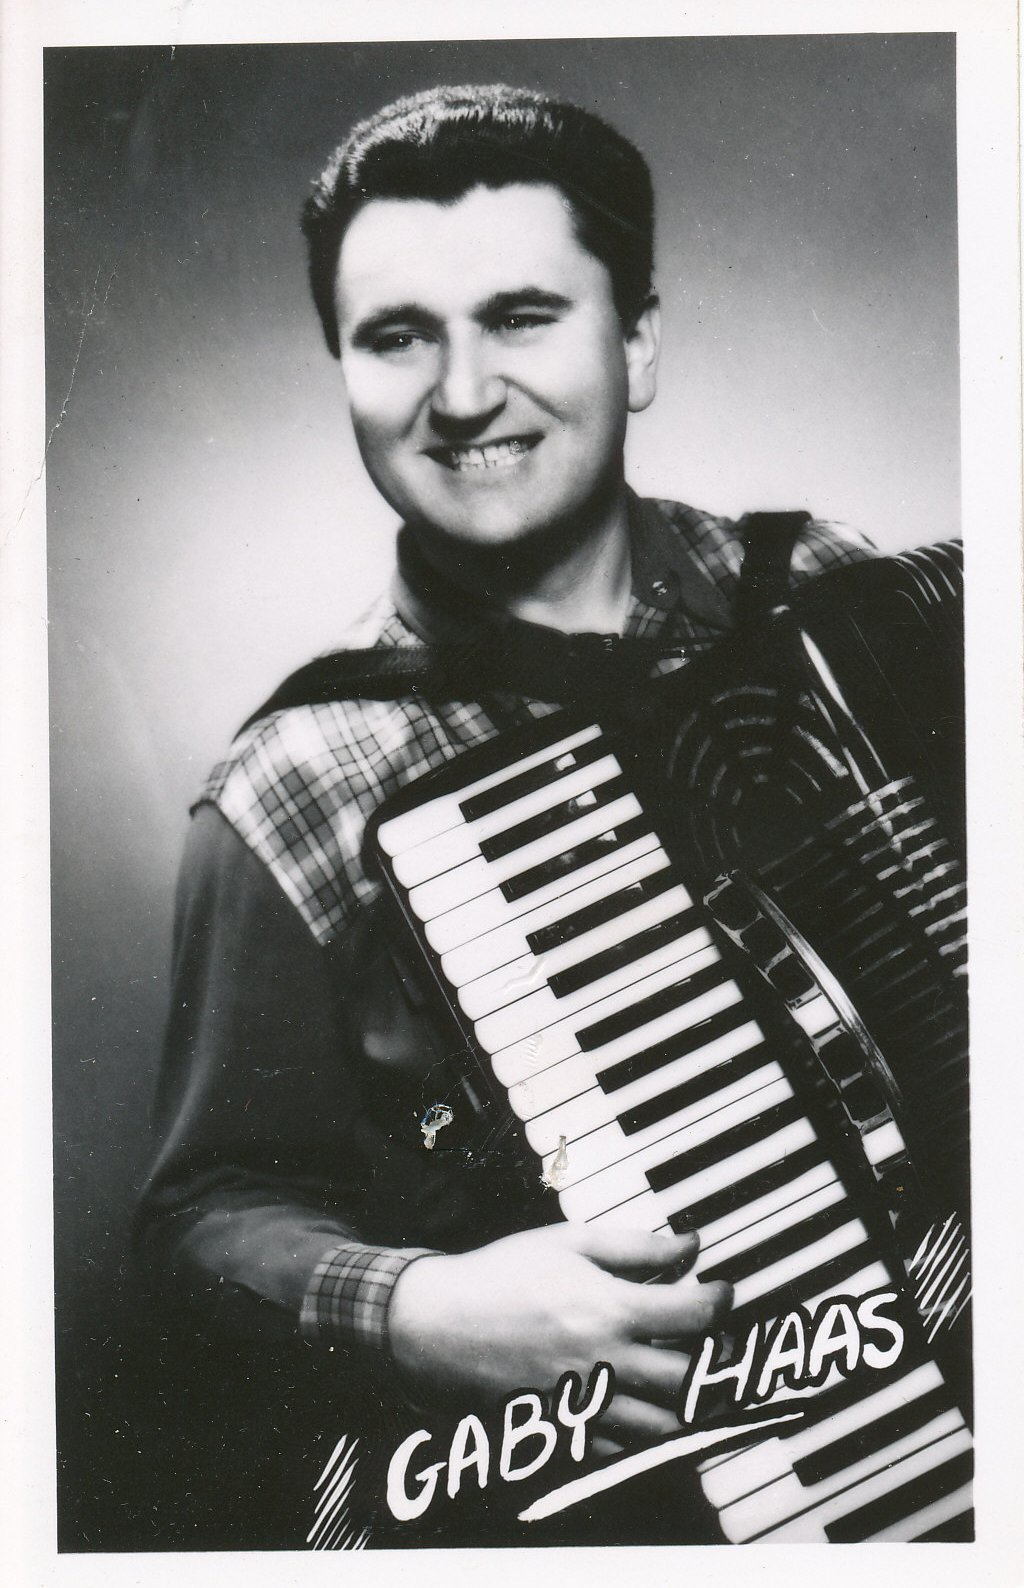 Promotional photograph of recording artist Gaby Haas on accordion, who was part of the CFRN-TV house band. Courtesy: Ed Kay © 2009 Al Girard